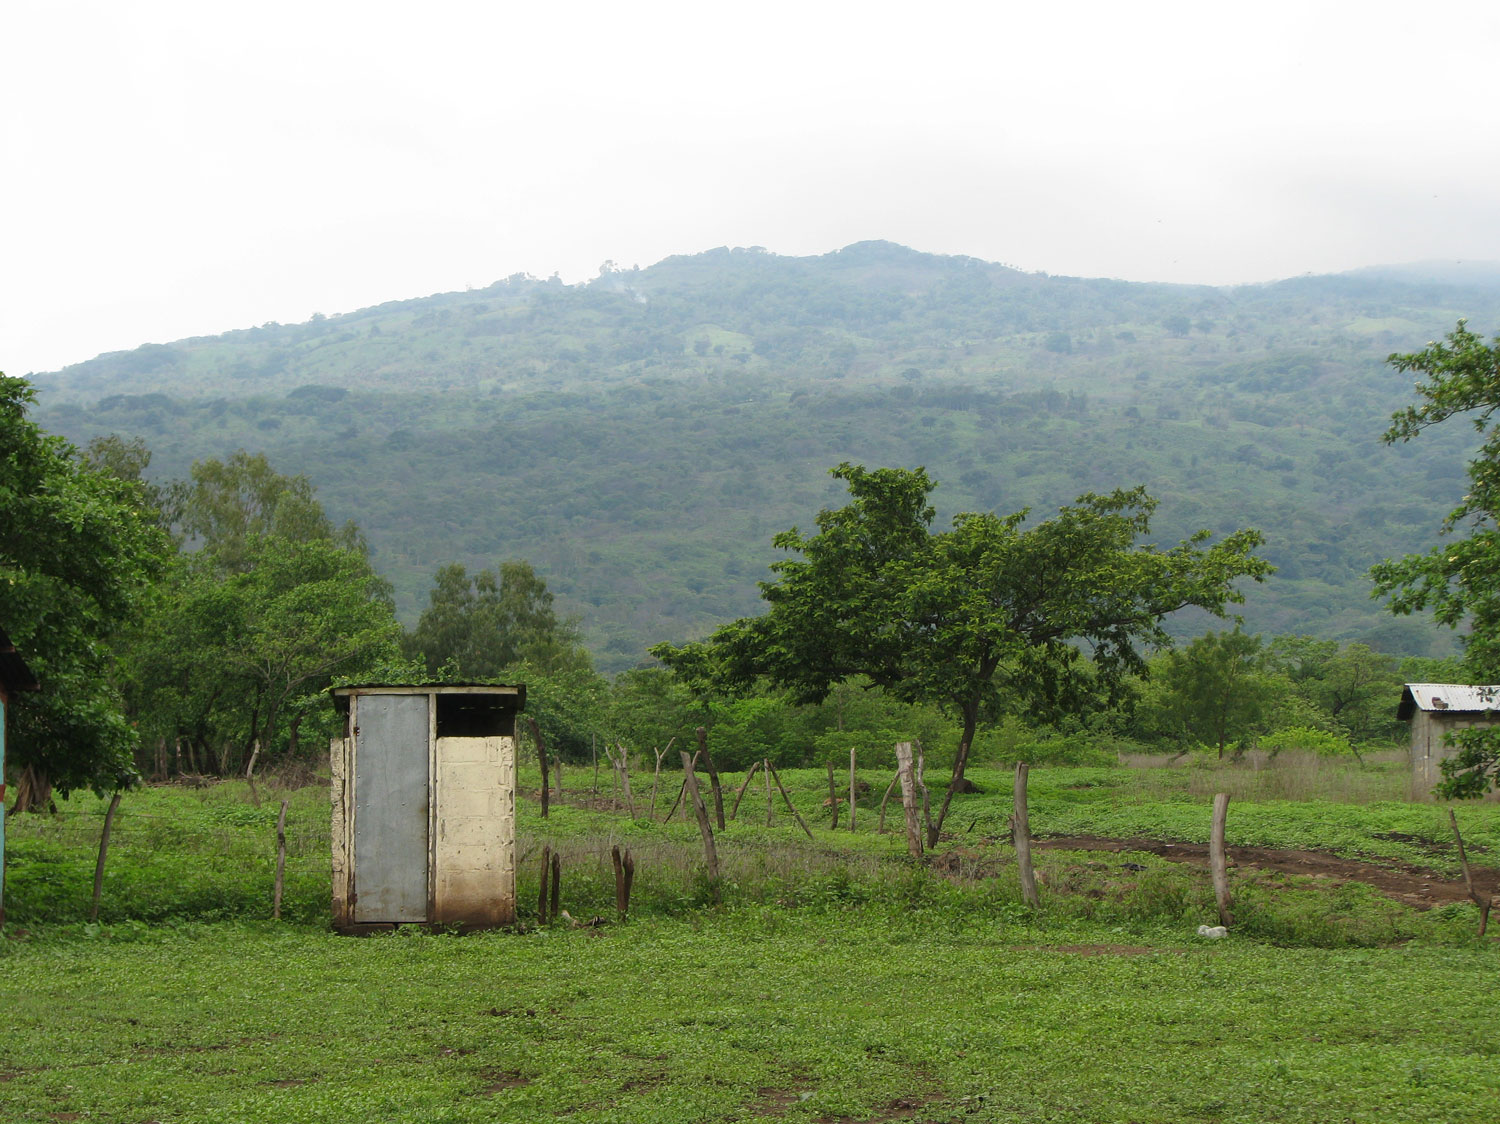 A latrine with the hill containing the hillside community of El Ojochal visible in the background. Today we will hike up to this community.